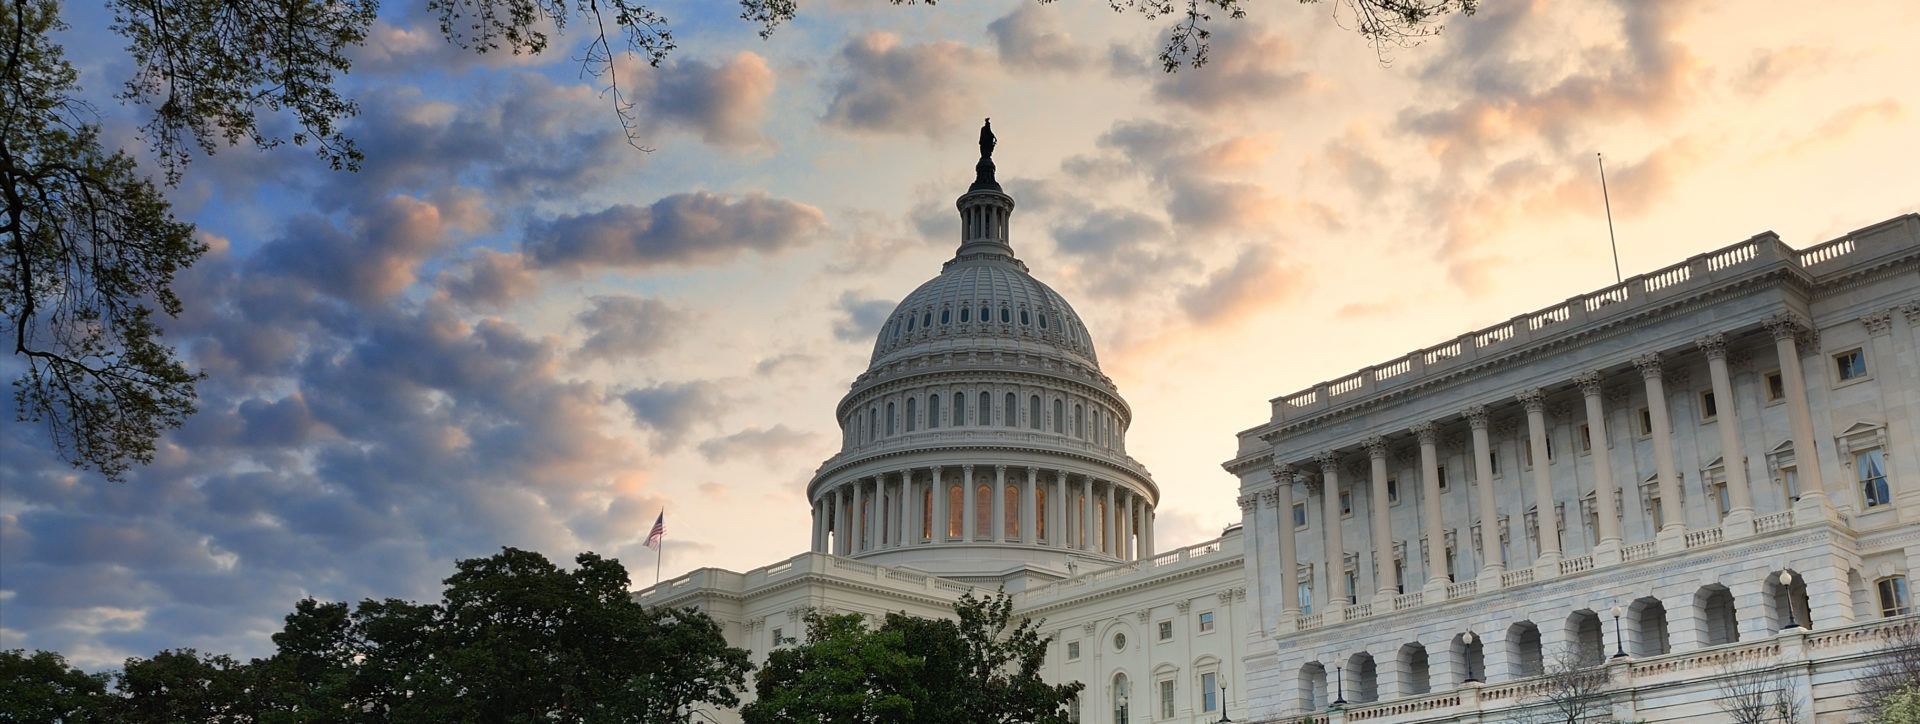 Chicago Immigration Attorneys Report Back From Capitol Hill